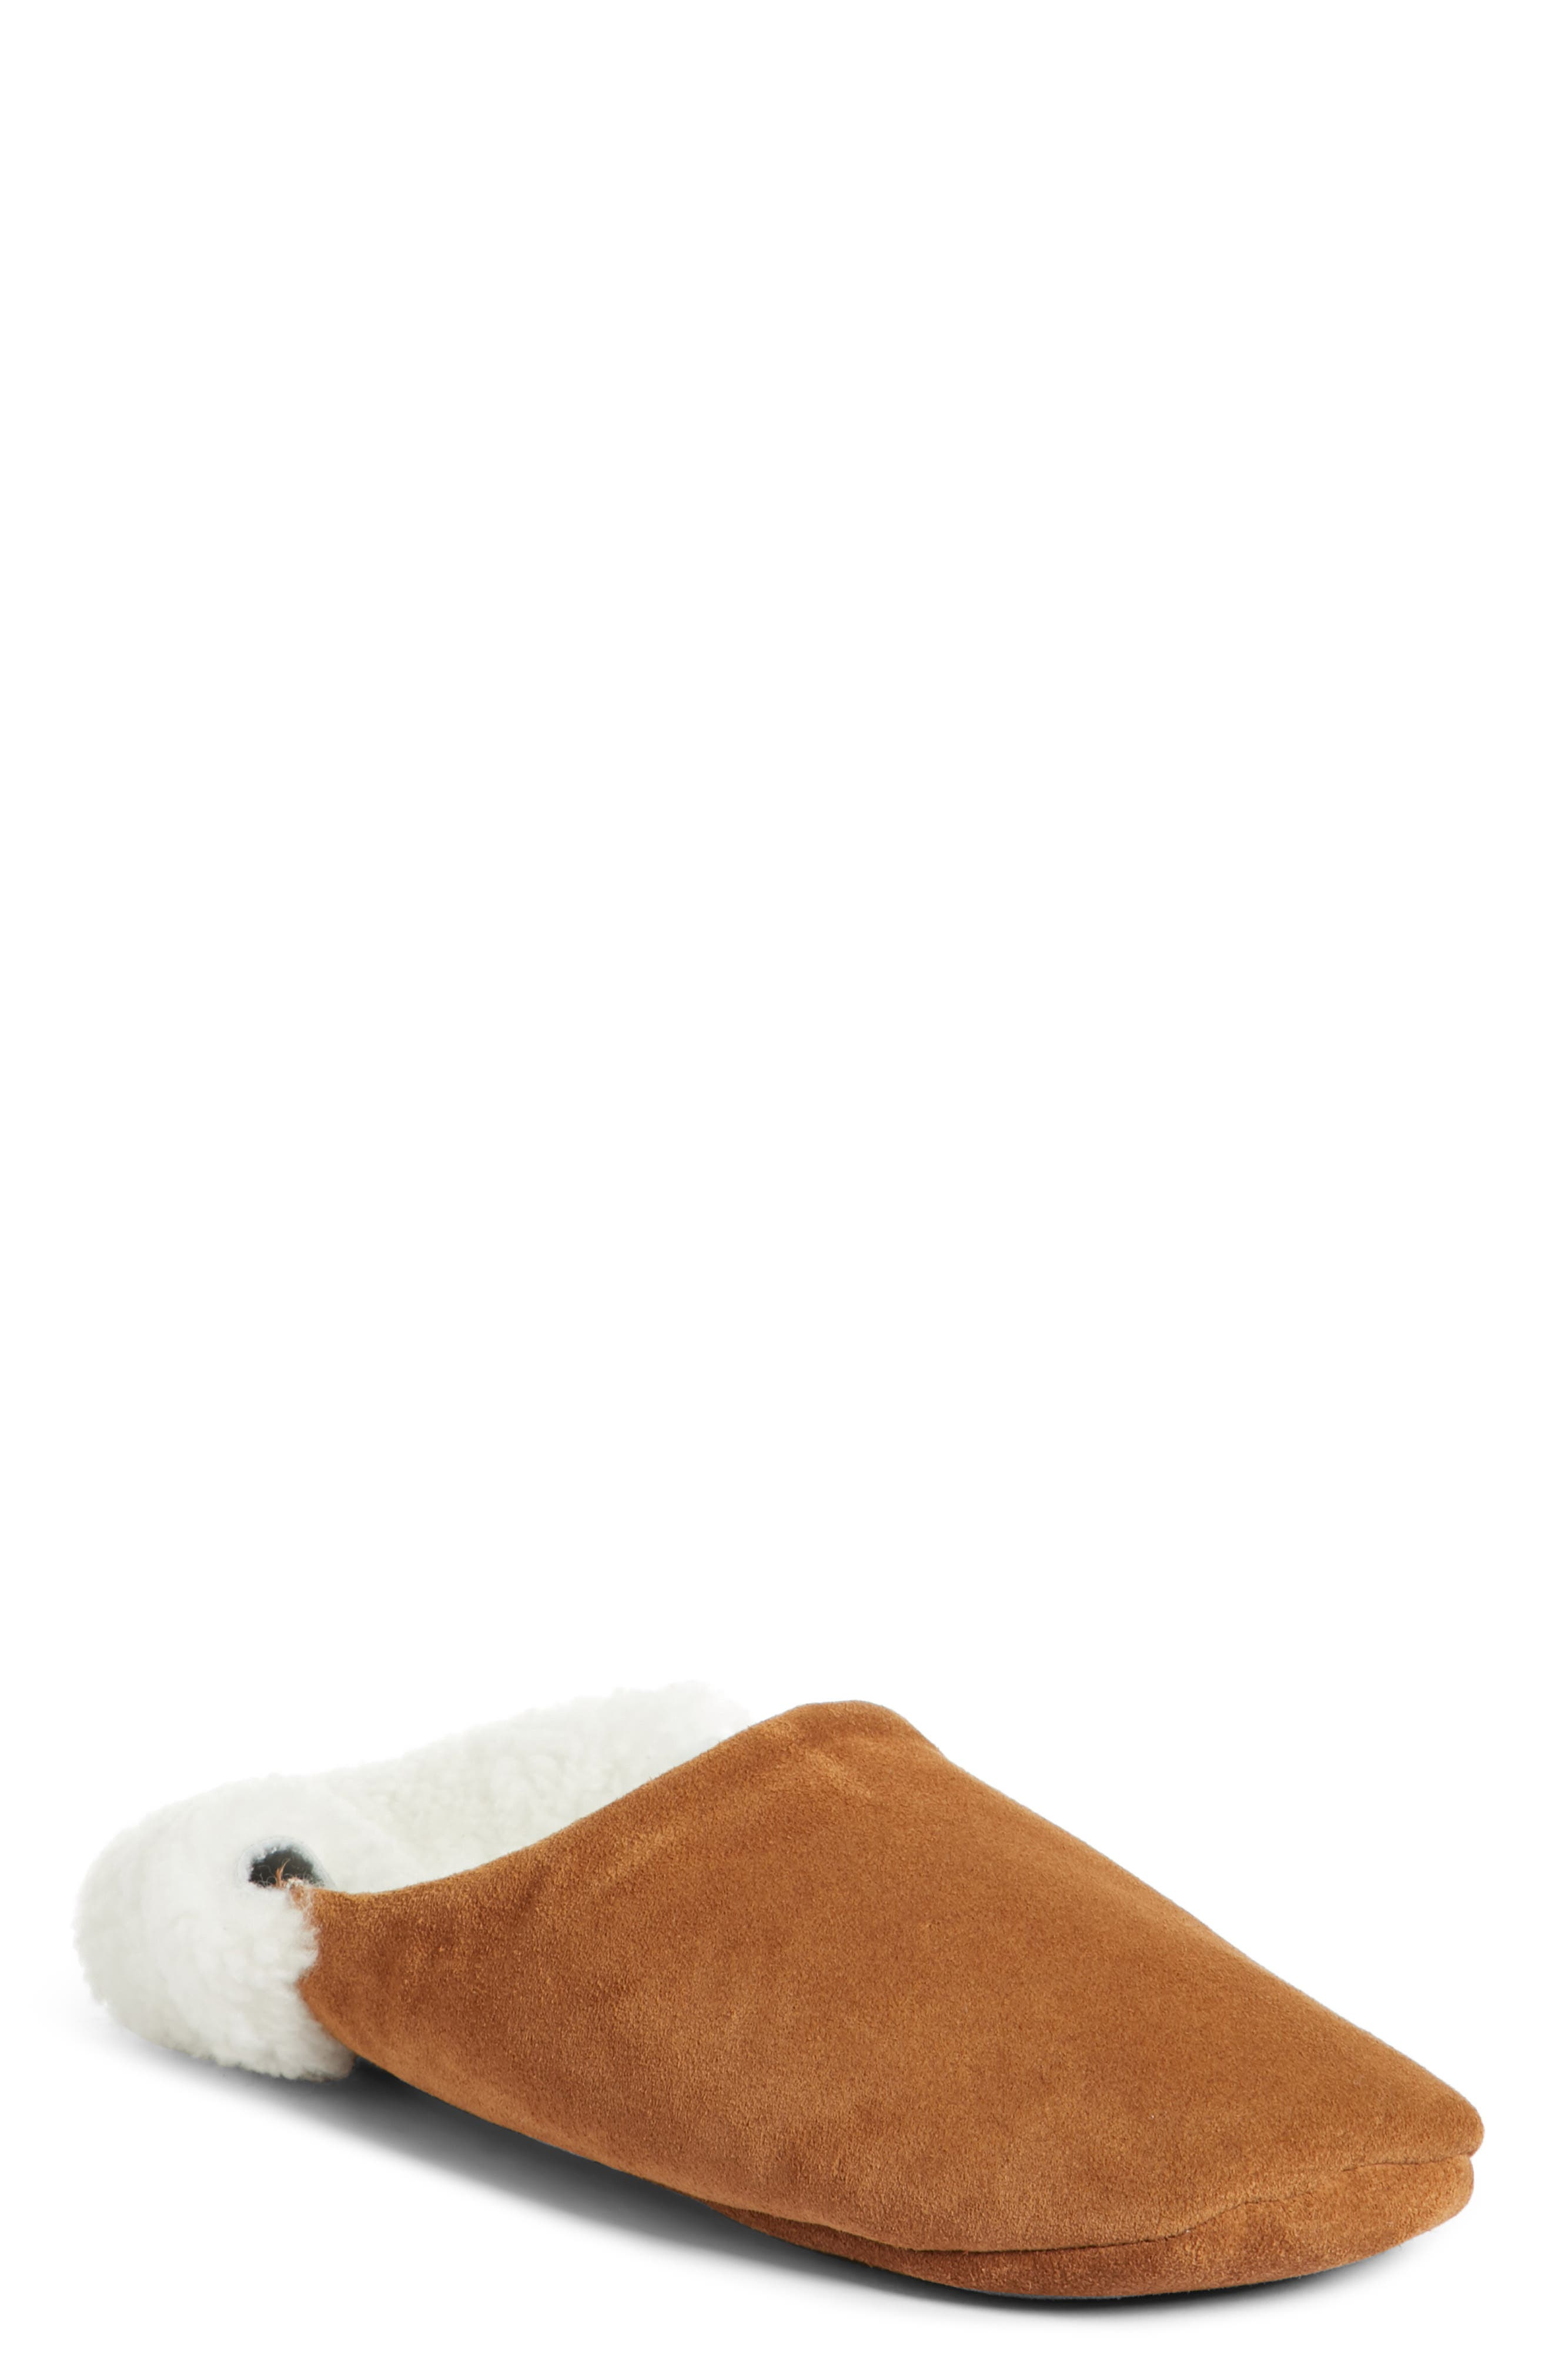 Moroccan Indoor Slipper,                             Main thumbnail 1, color,                             SADDLE/ IVORY